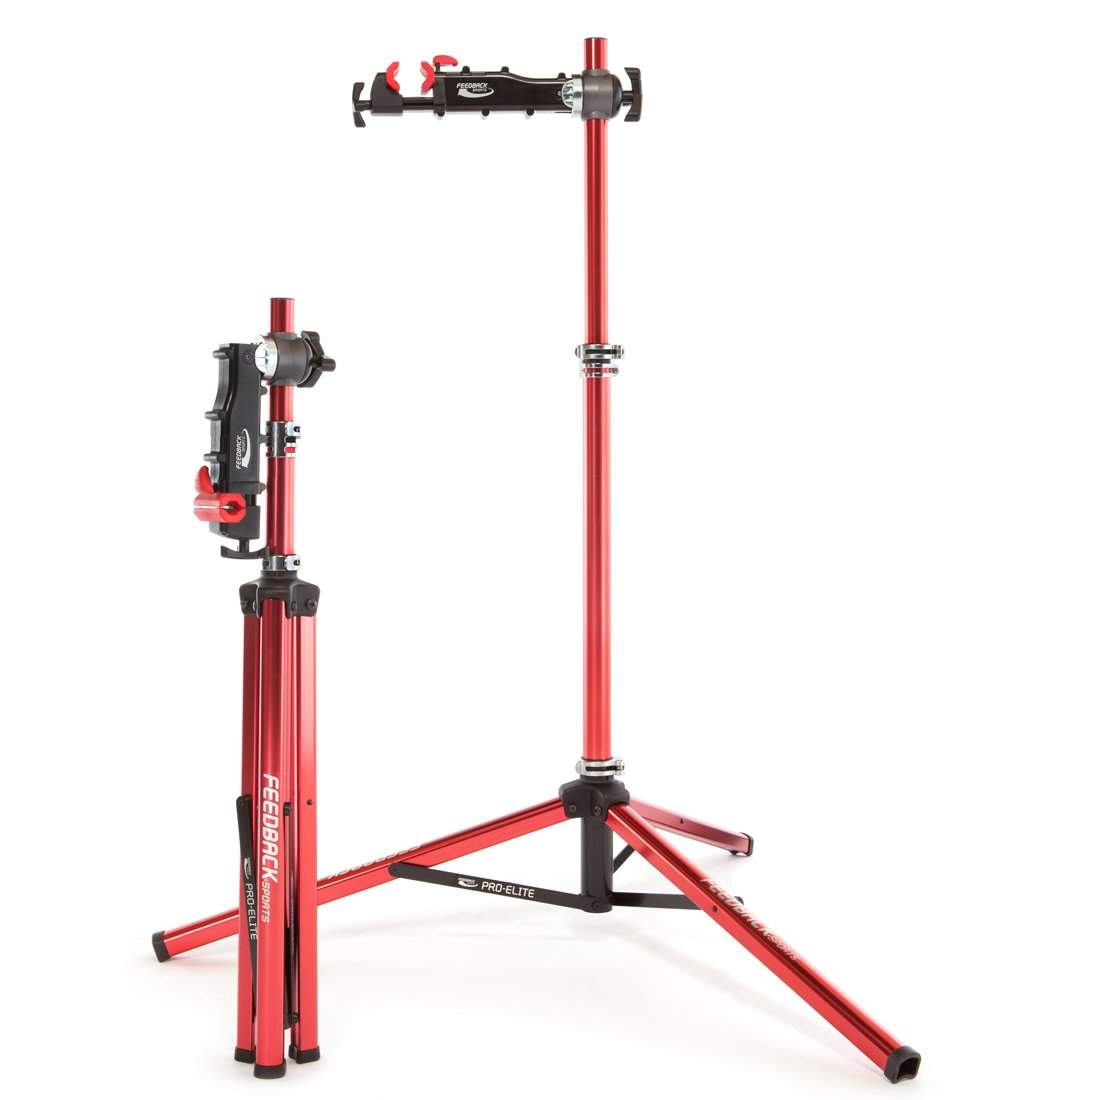 Feedback Sports Pro Elite Repair Stand with Tote Bag (Red) by Feedback Sports